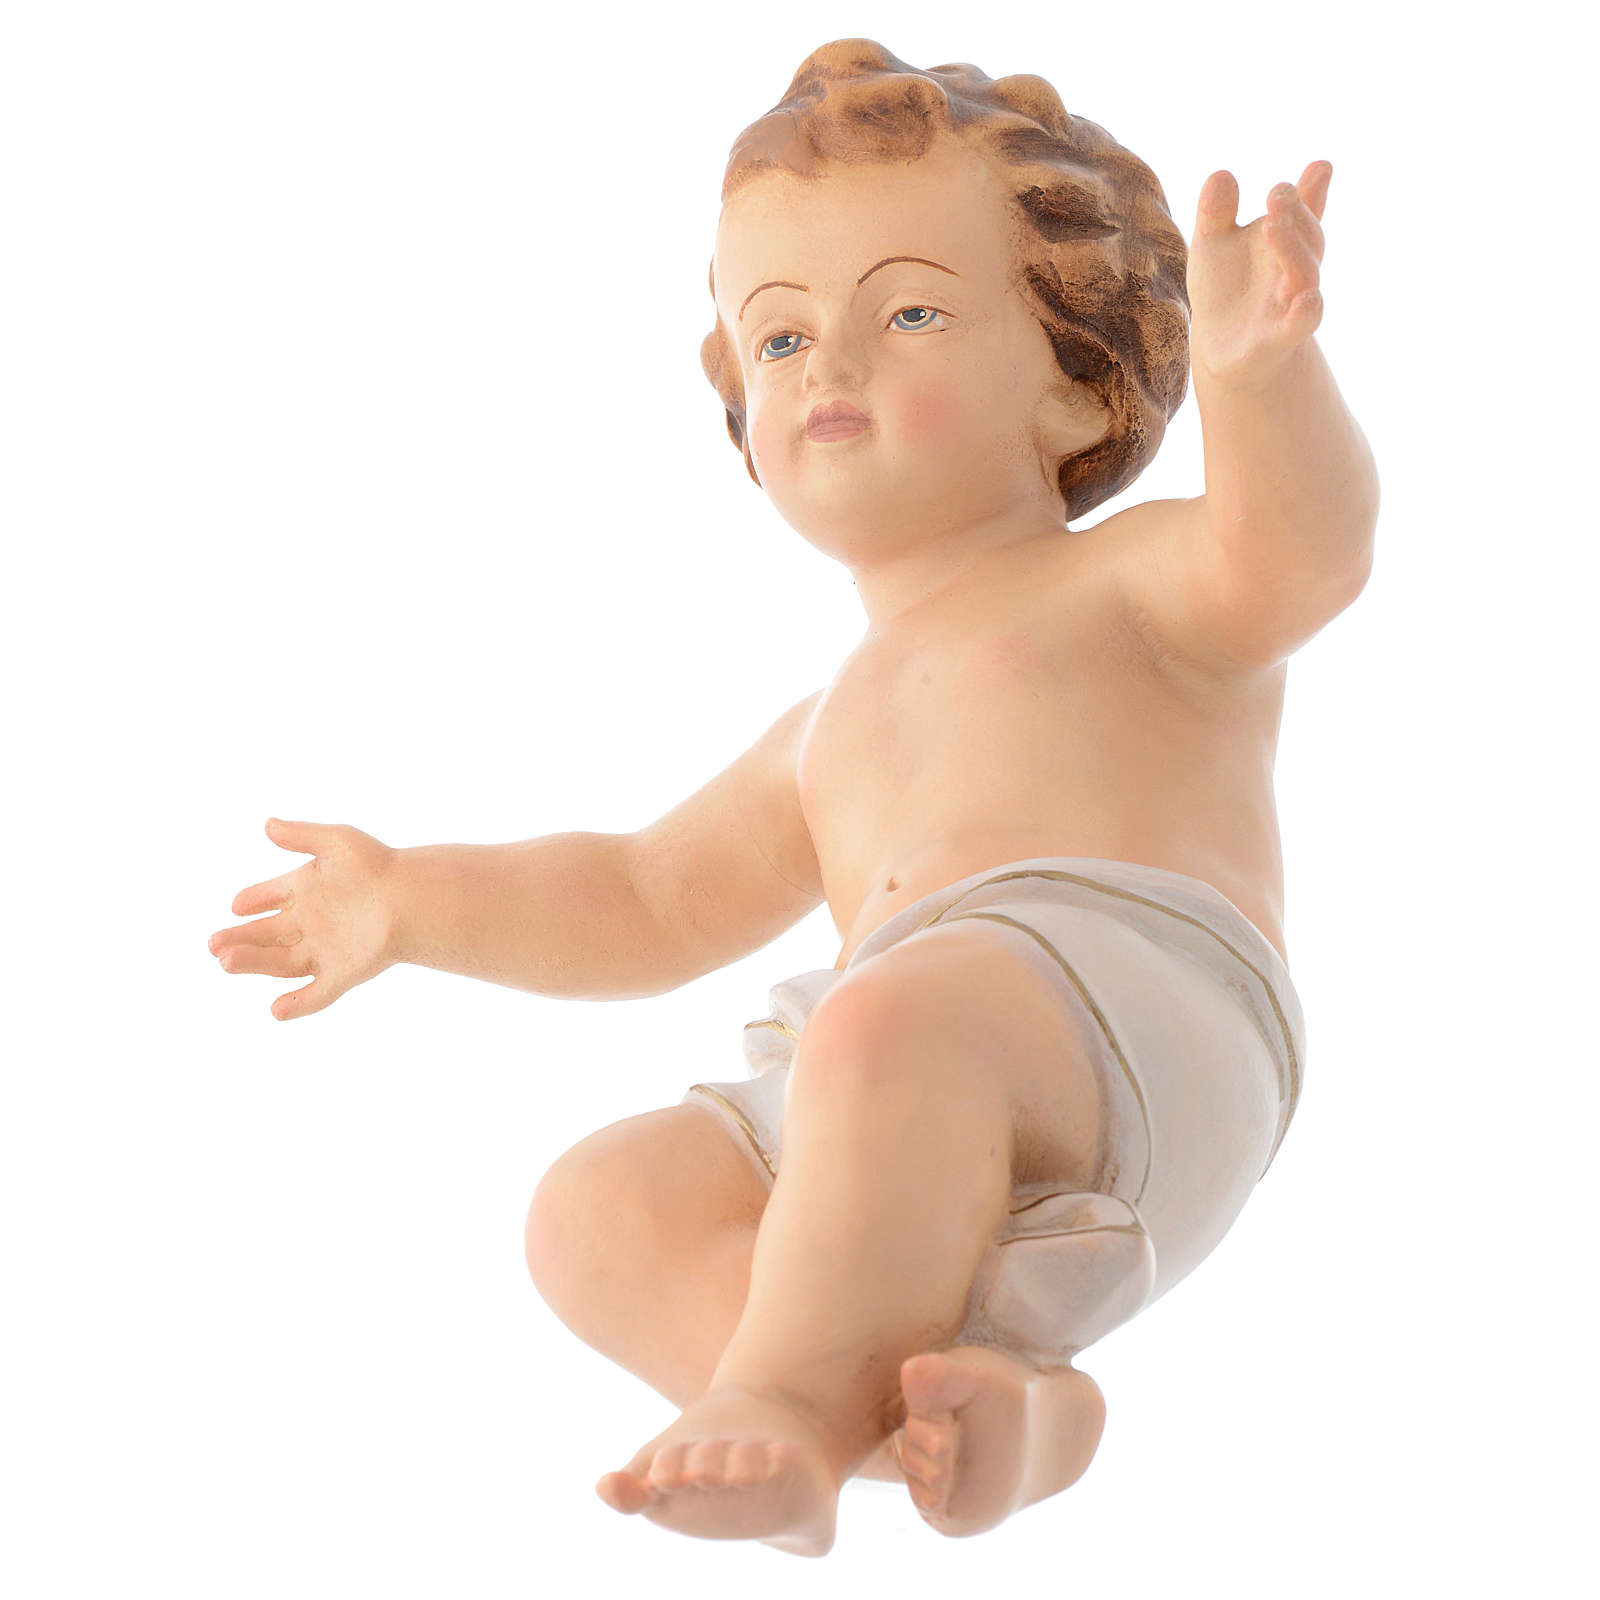 Baby Jesus wooden figurine with opened arms and white drape 3